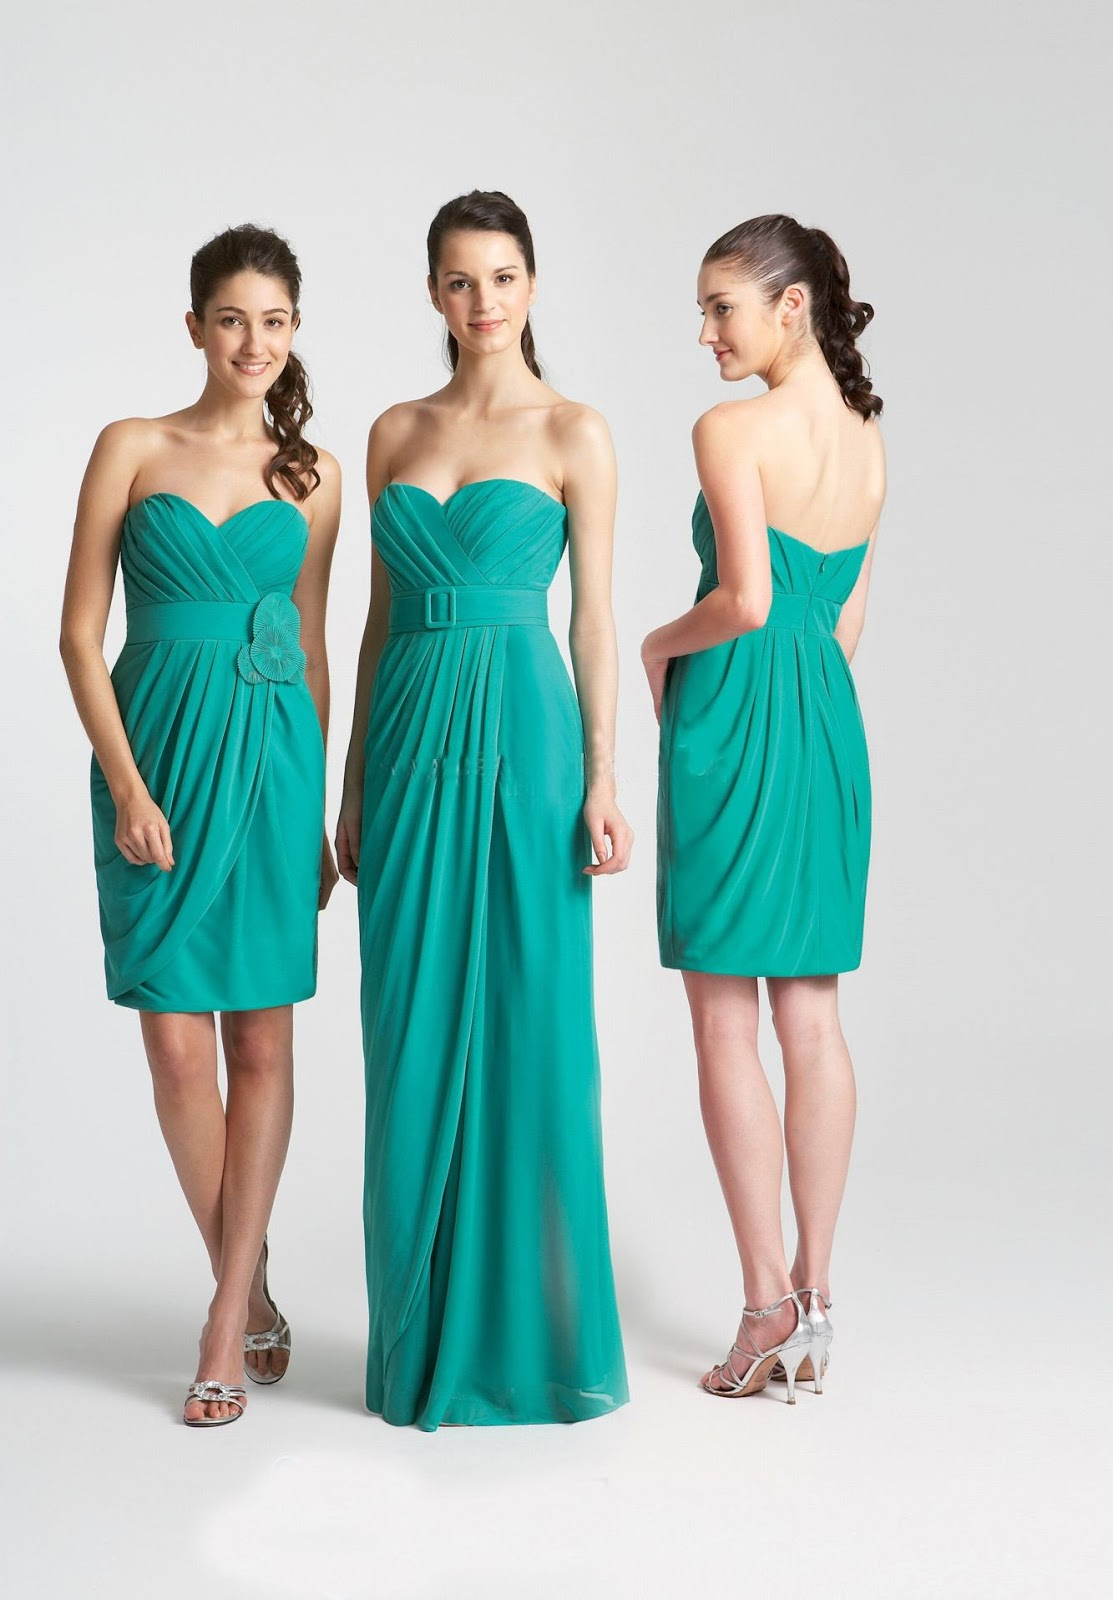 WhiteAzalea Bridesmaid Dresses: Fresh Green Bridesmaid Dress